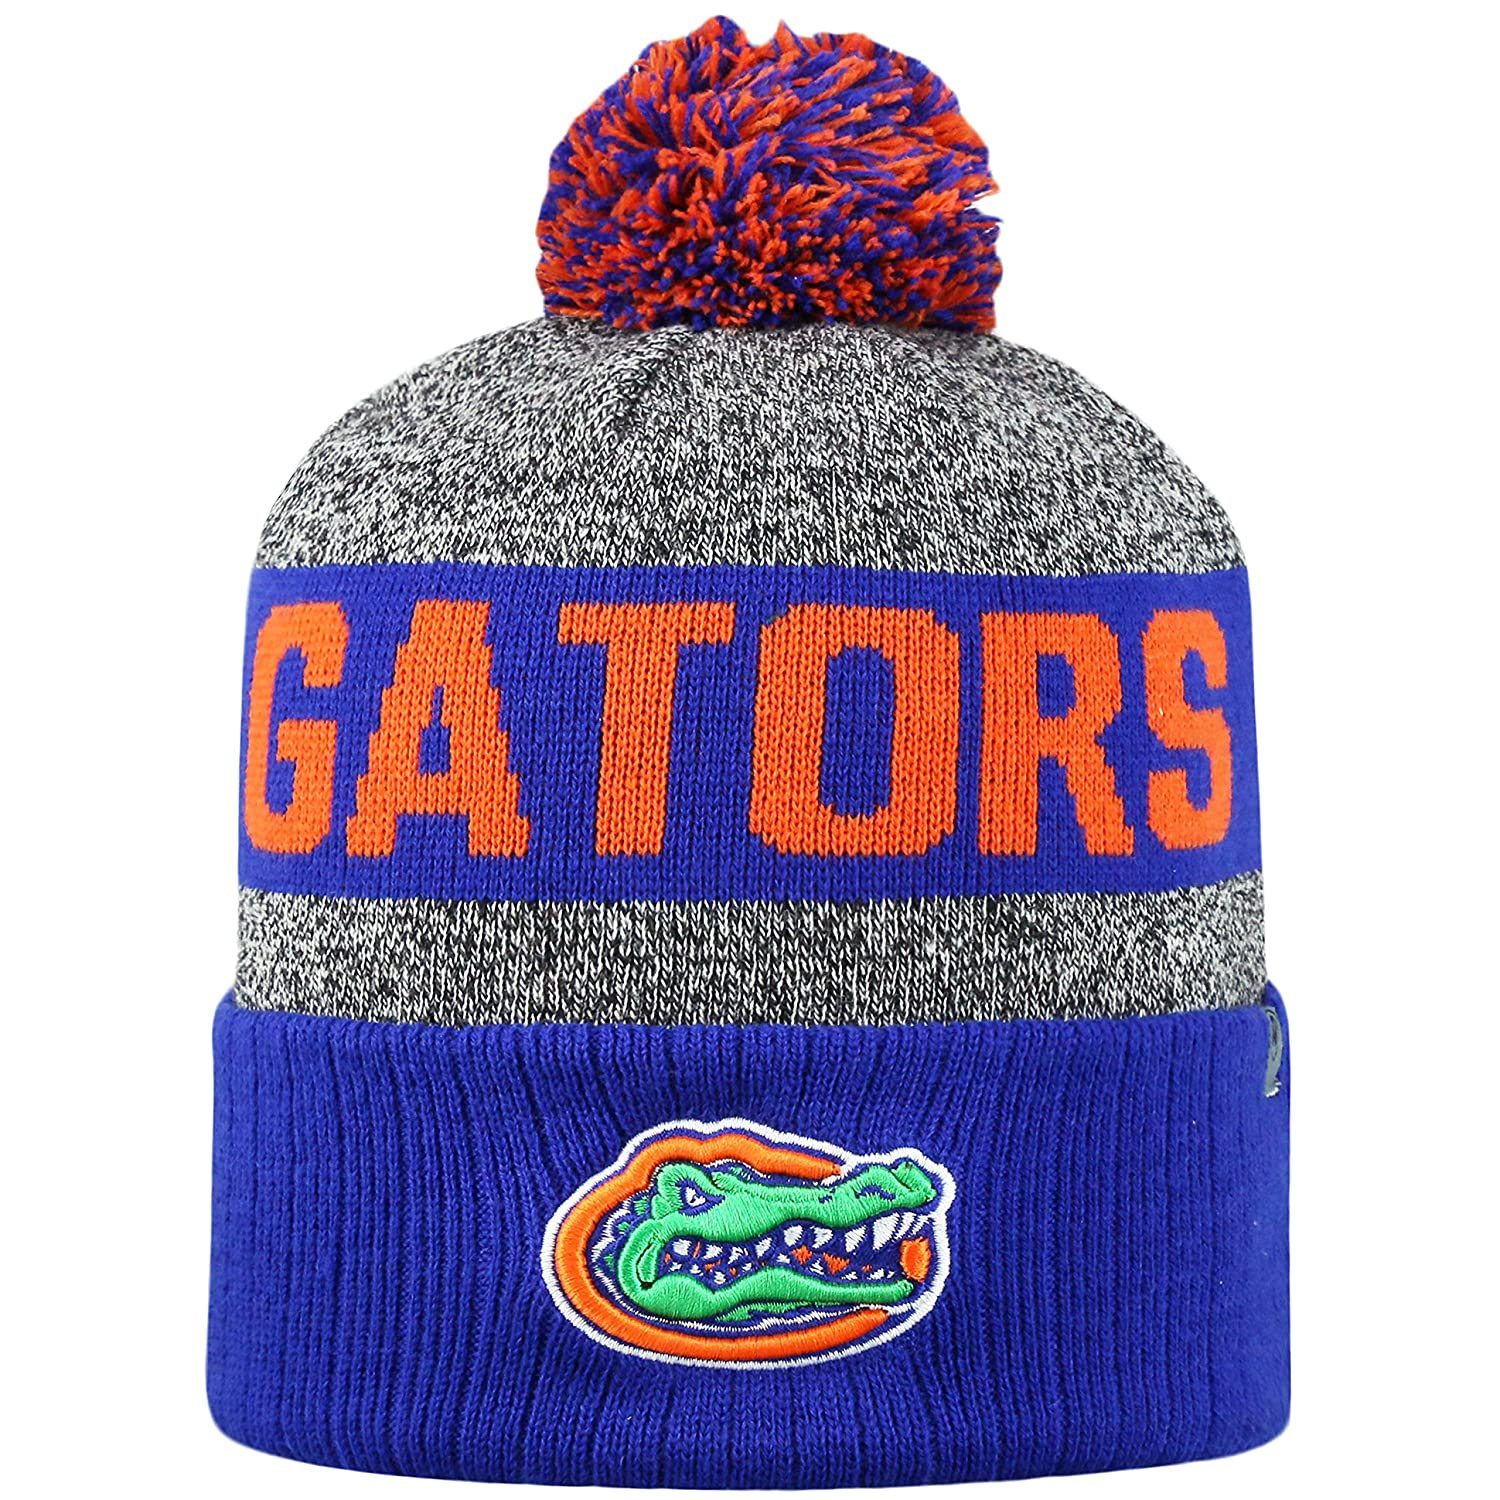 2224ad0d23b Amazon.com   Top of the World NCAA Arctic Striped Cuffed Knit Pom Beanie Hat-Alabama  Crimson Tide   Sports   Outdoors